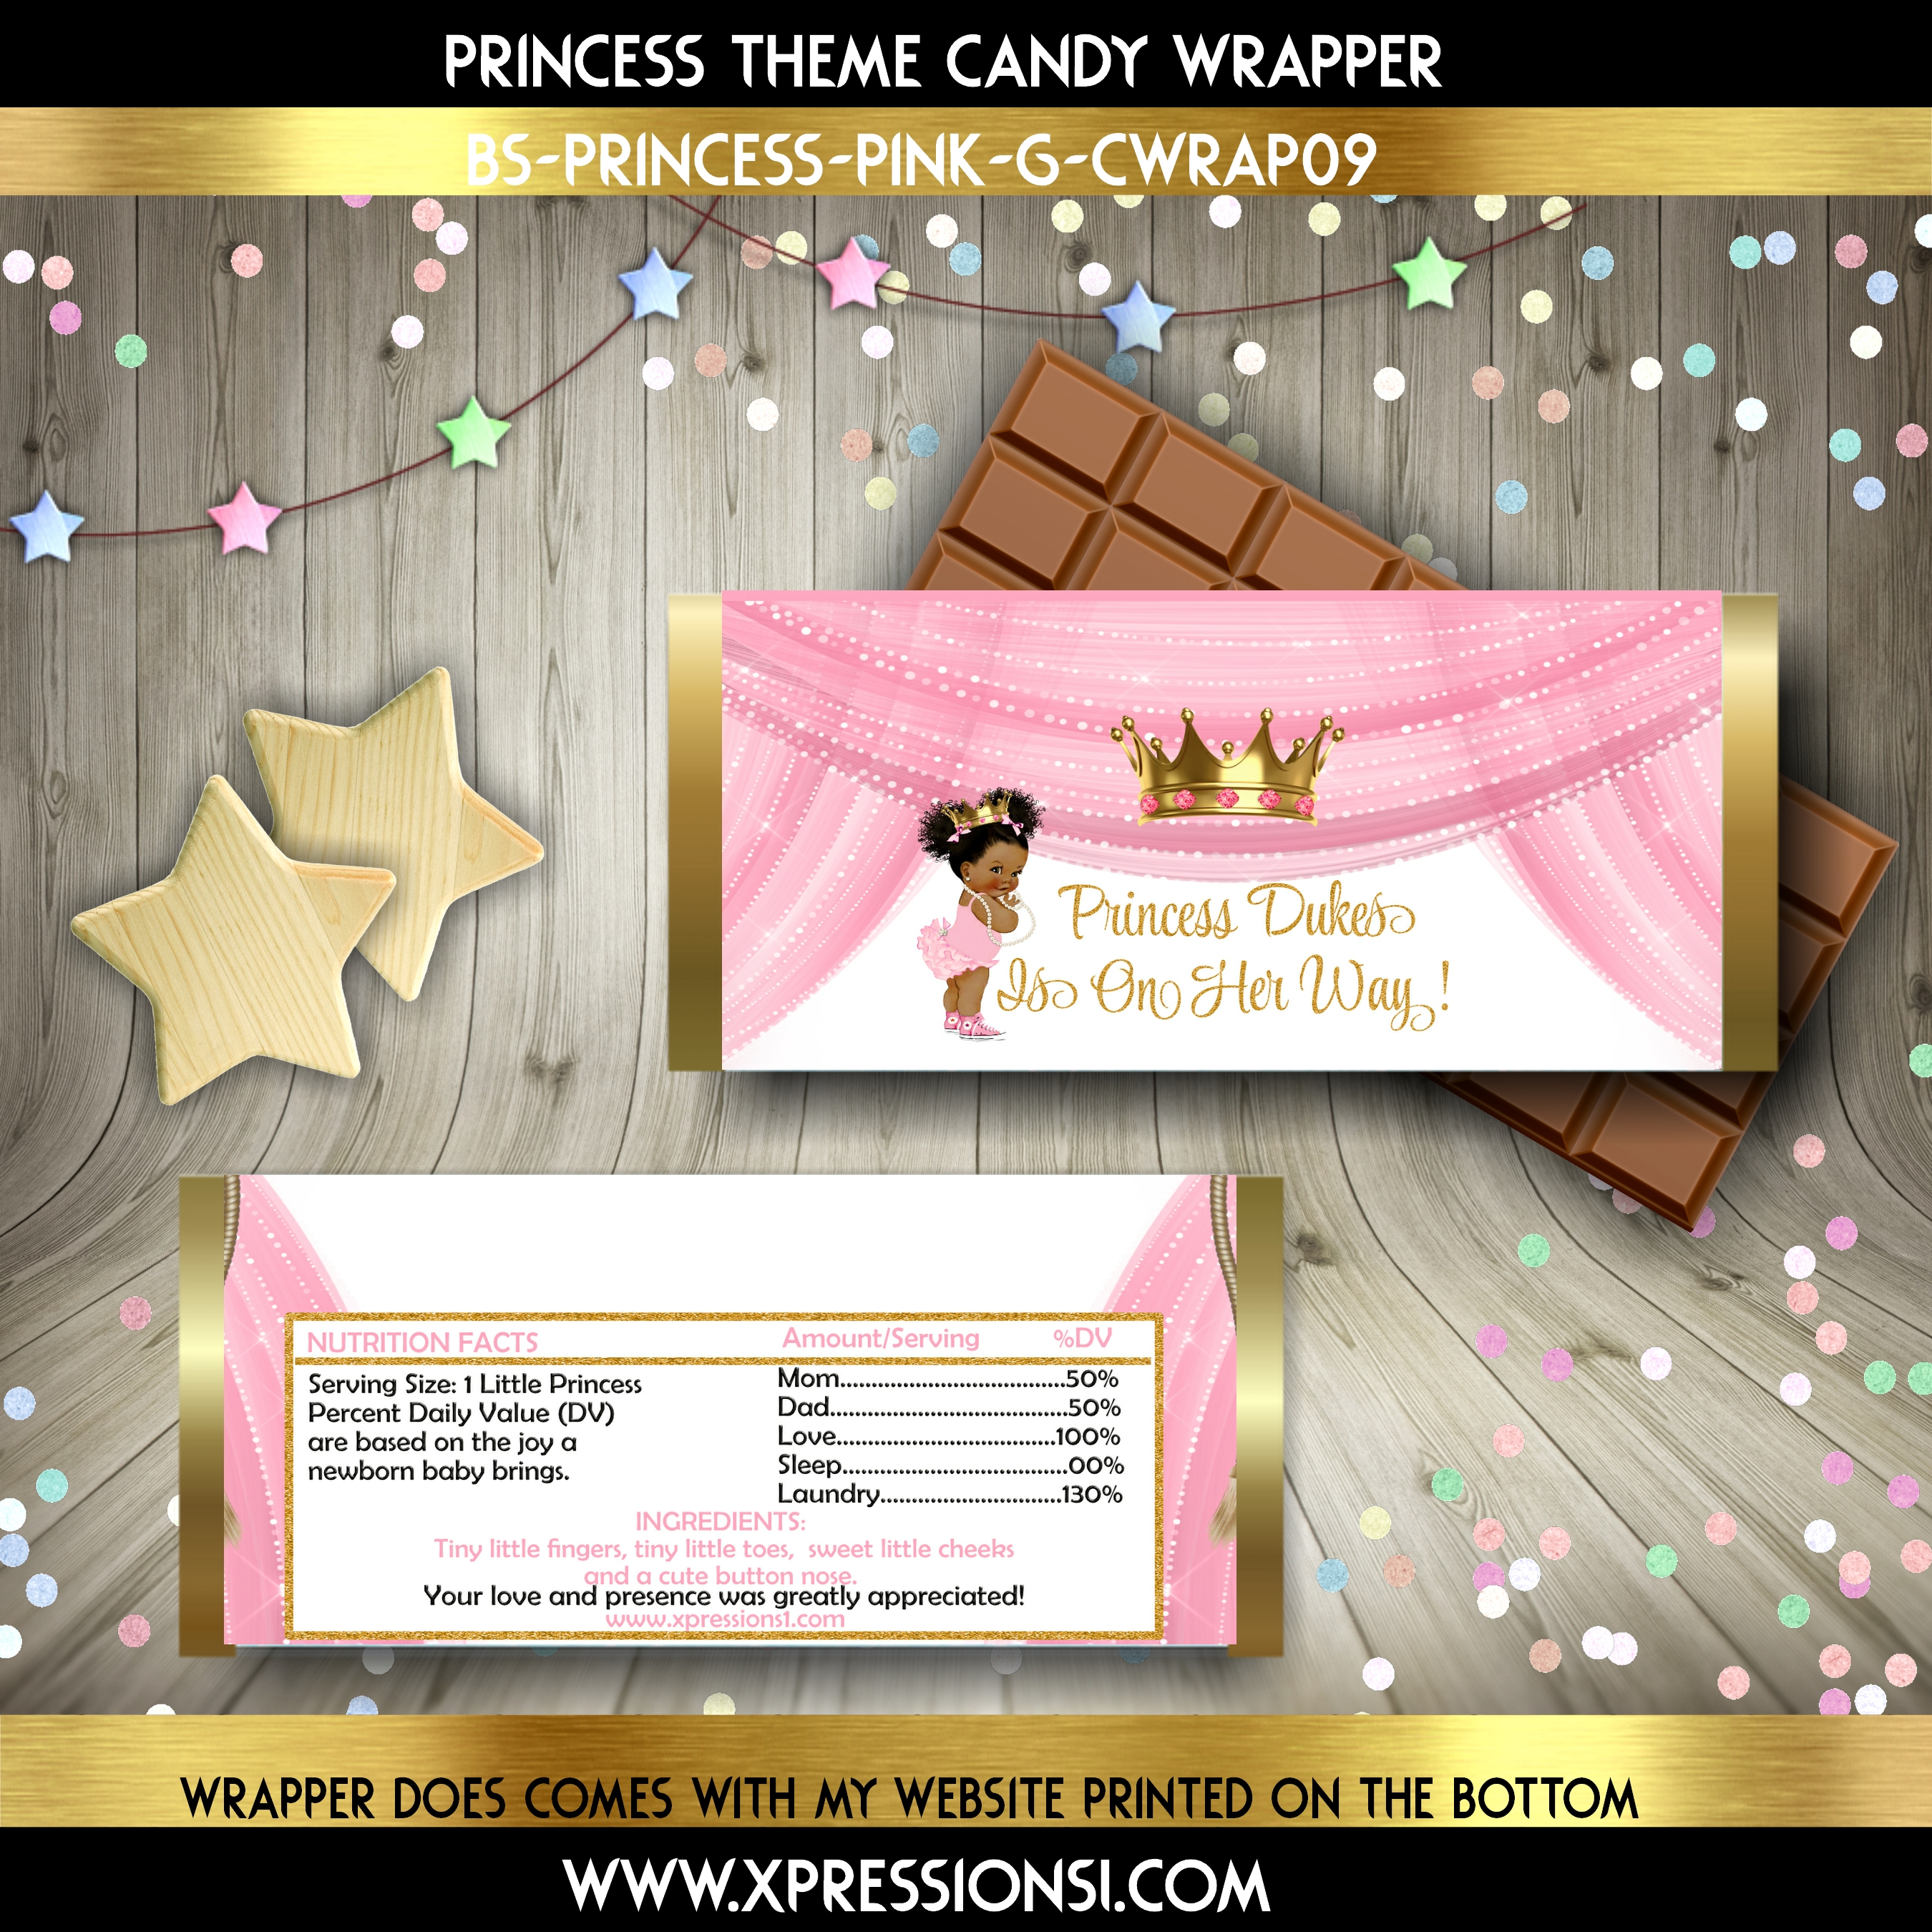 Diva Princess in Sneakers Candy Wrapper